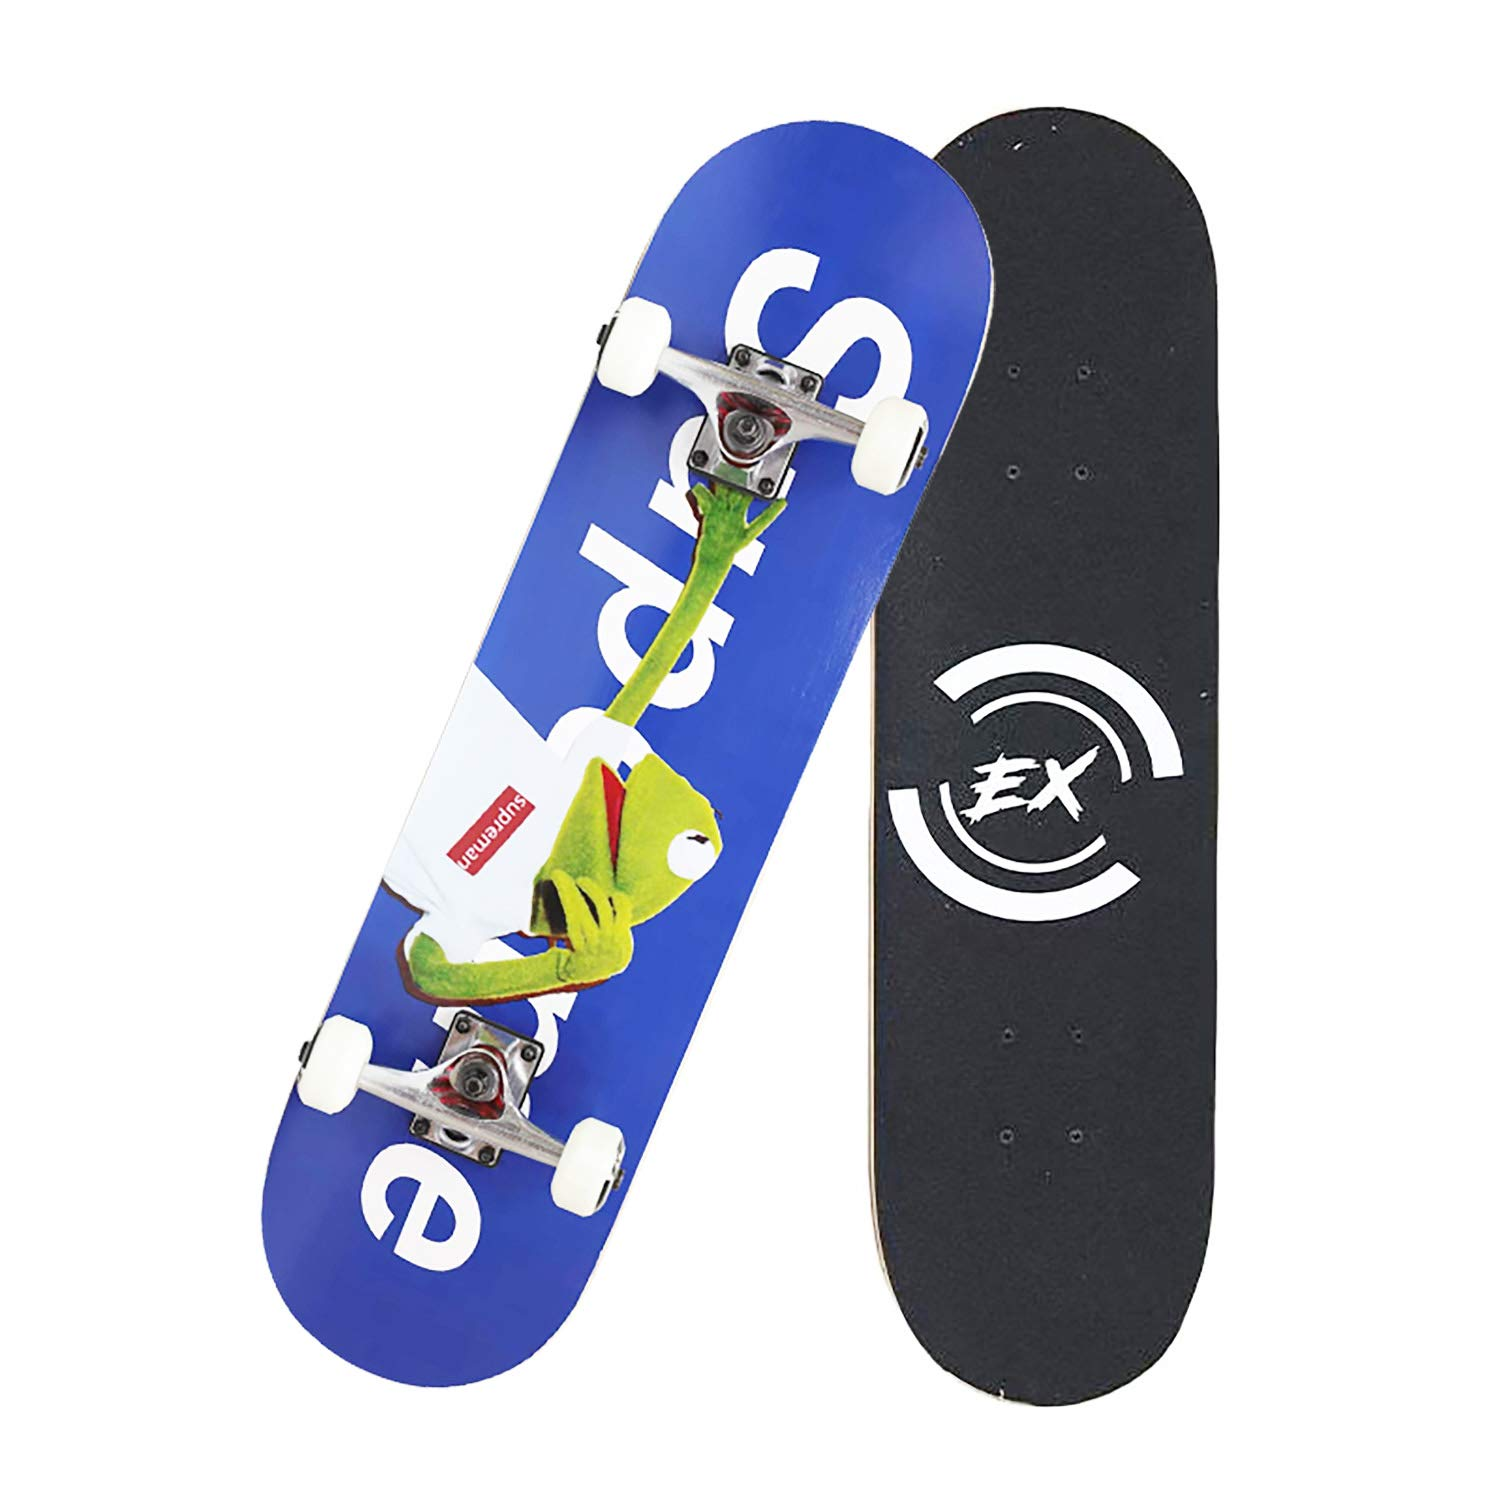 Pro Skateboard 31'' X 8'' Standard Skateboards Cruiser Complete Canadian Maple 9 Layers Double Kick Concave Skate Boards by DIYUSI